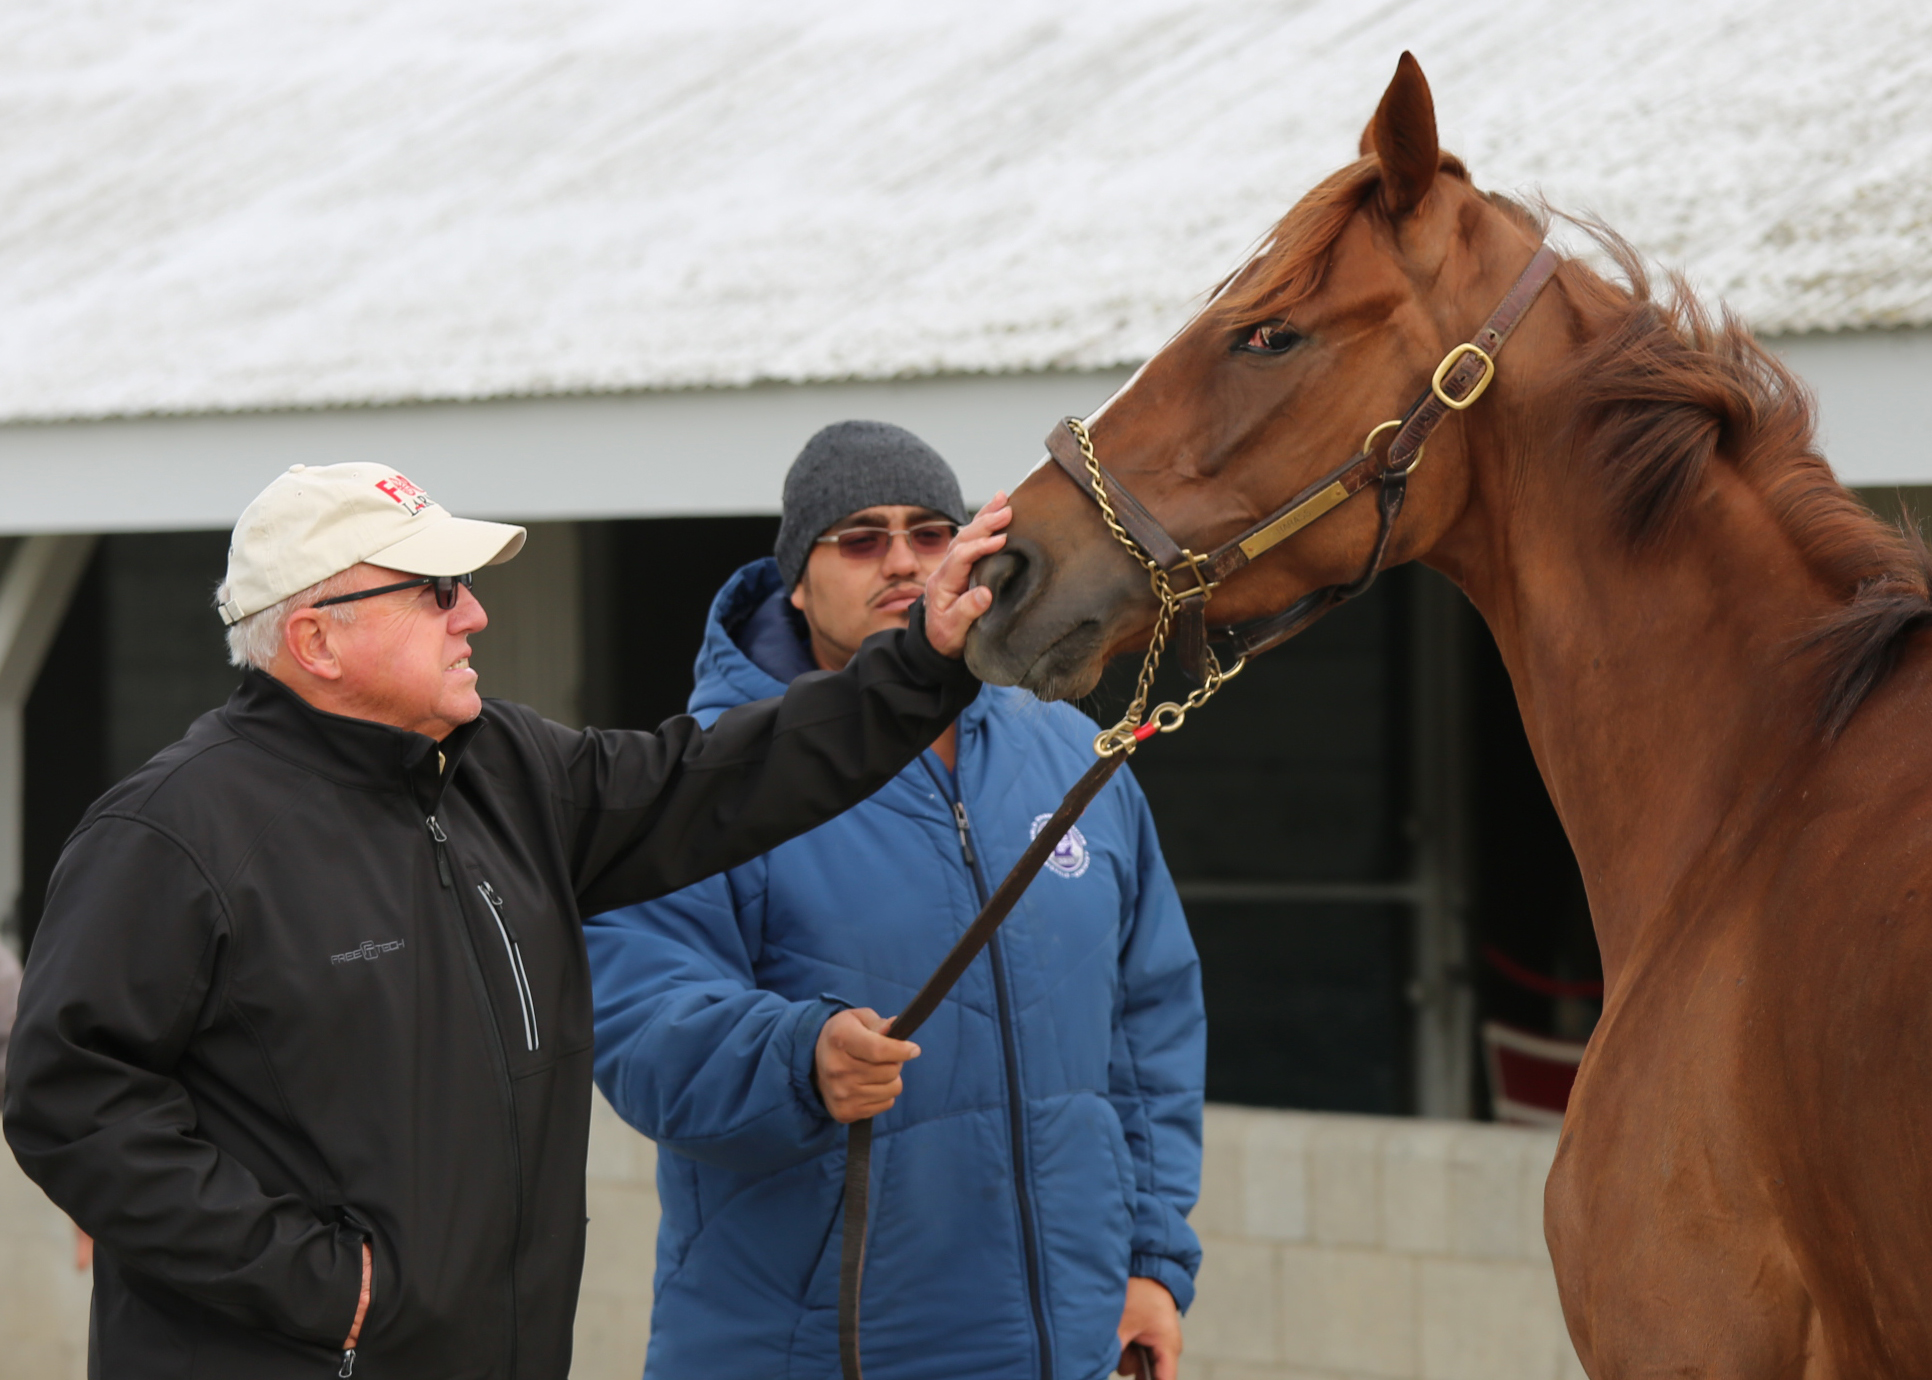 For frank penn horses and tobacco have made a great combination on frank penn works with one of his thoroughbreds at keeneland malvernweather Gallery